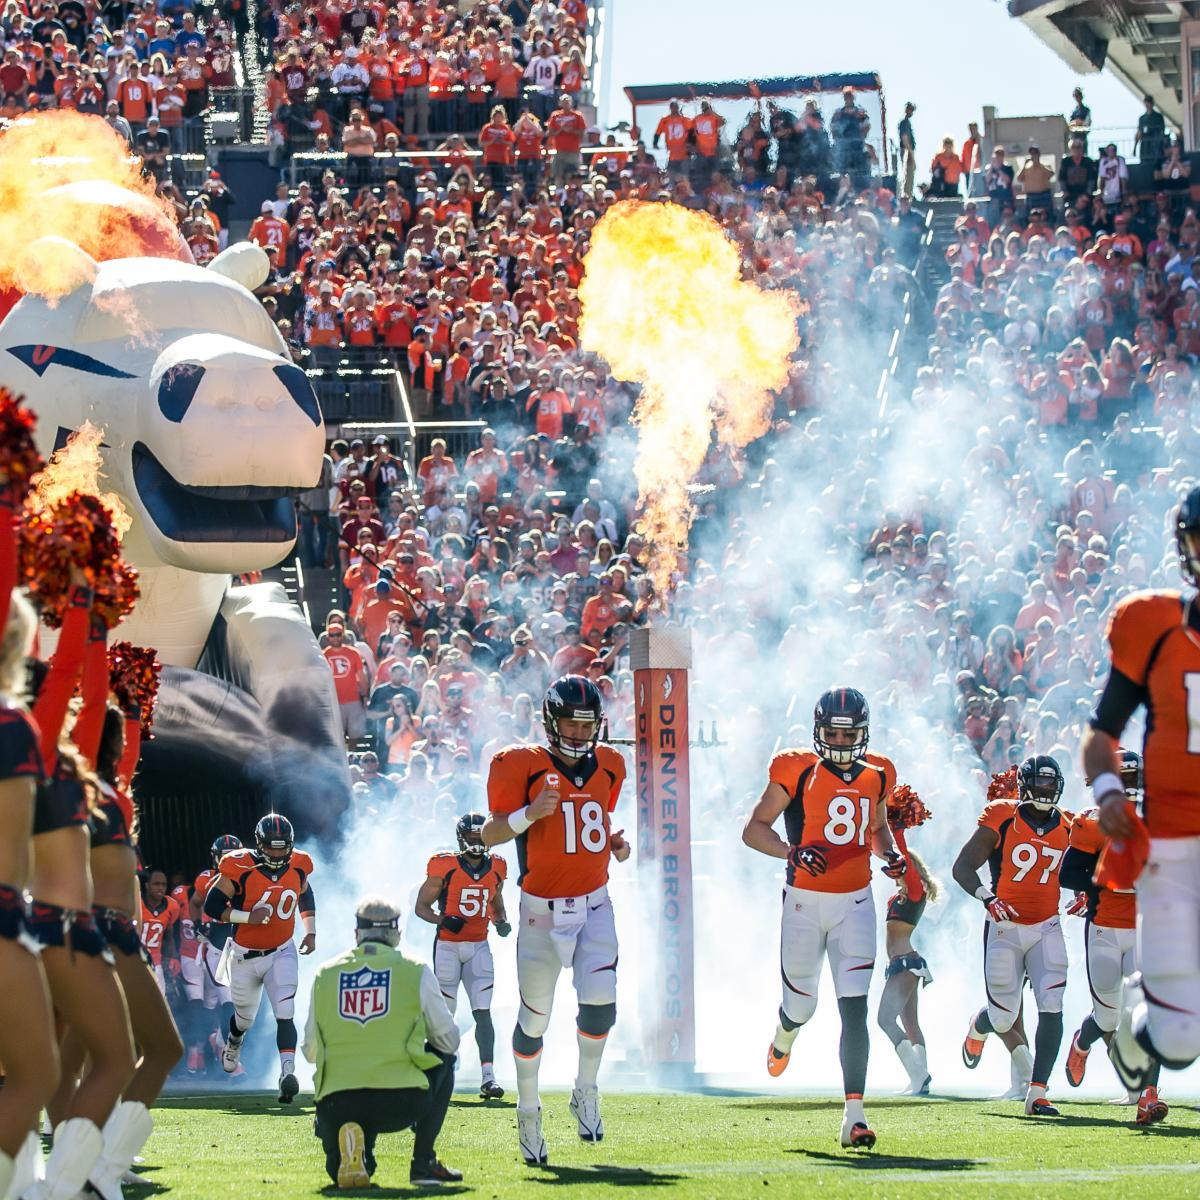 Denver Broncos: Dominance May Be Slipping, But Broncos